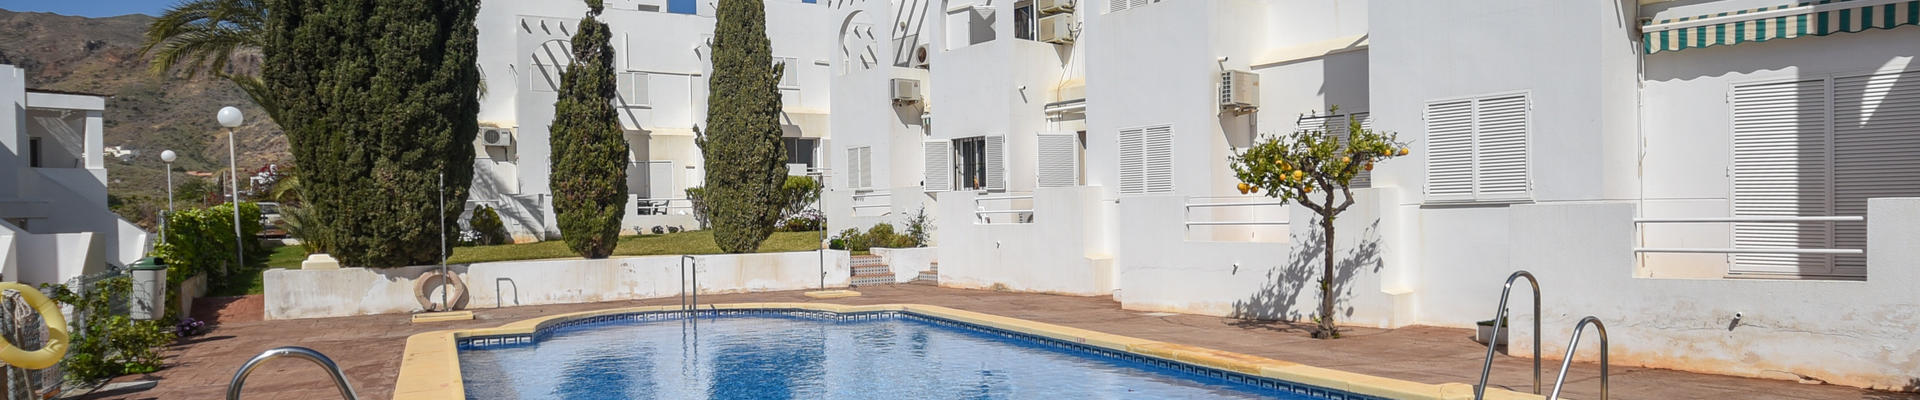 LV770: 3 Bedroom Townhouse for Sale